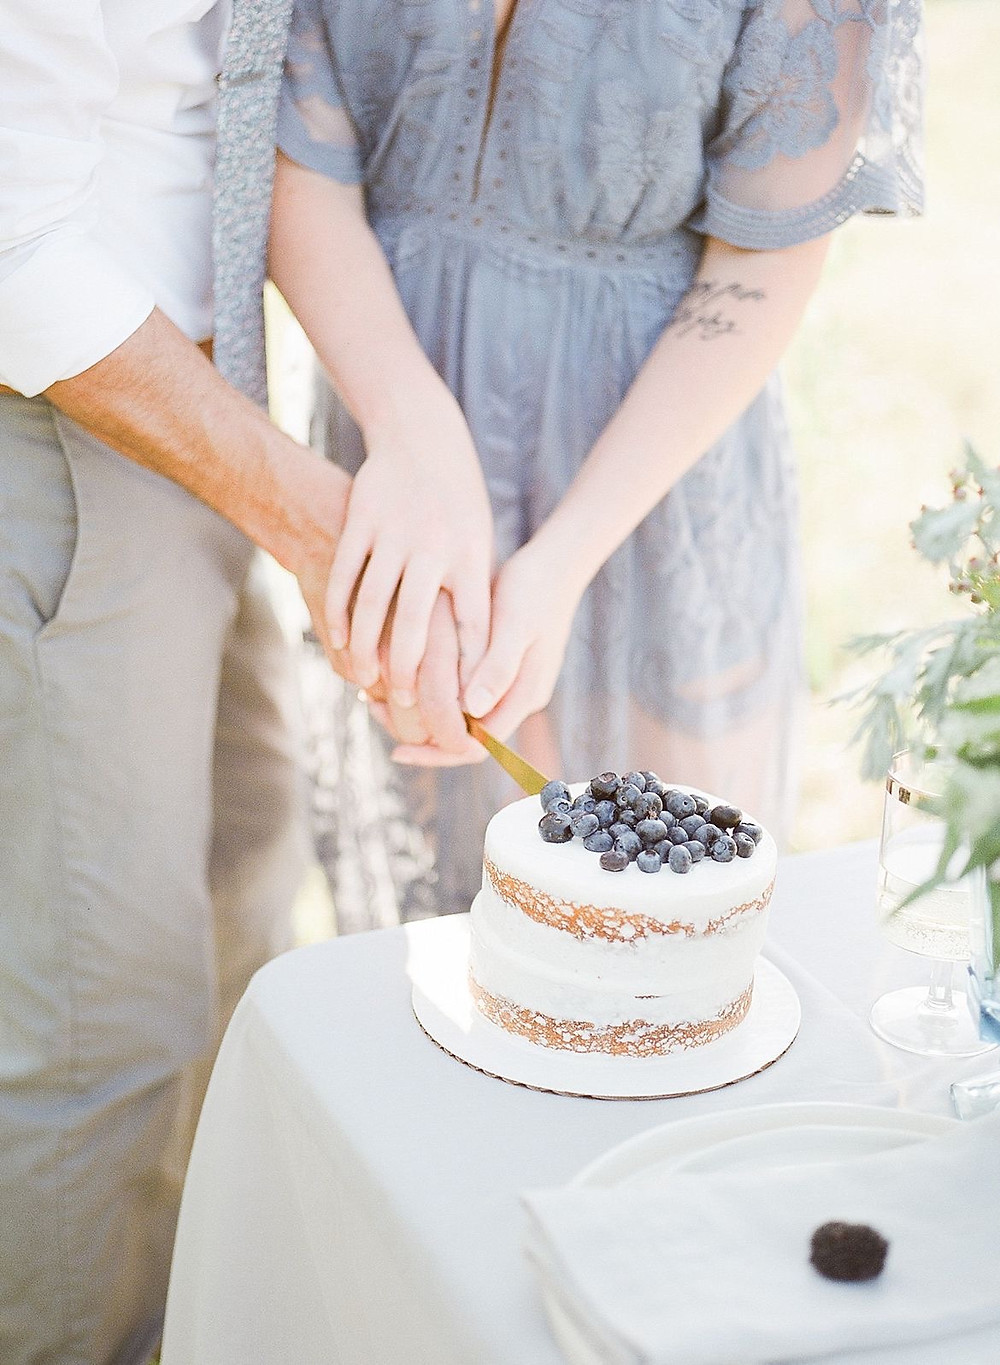 wedding anniversary couple cutting cake with blueberries